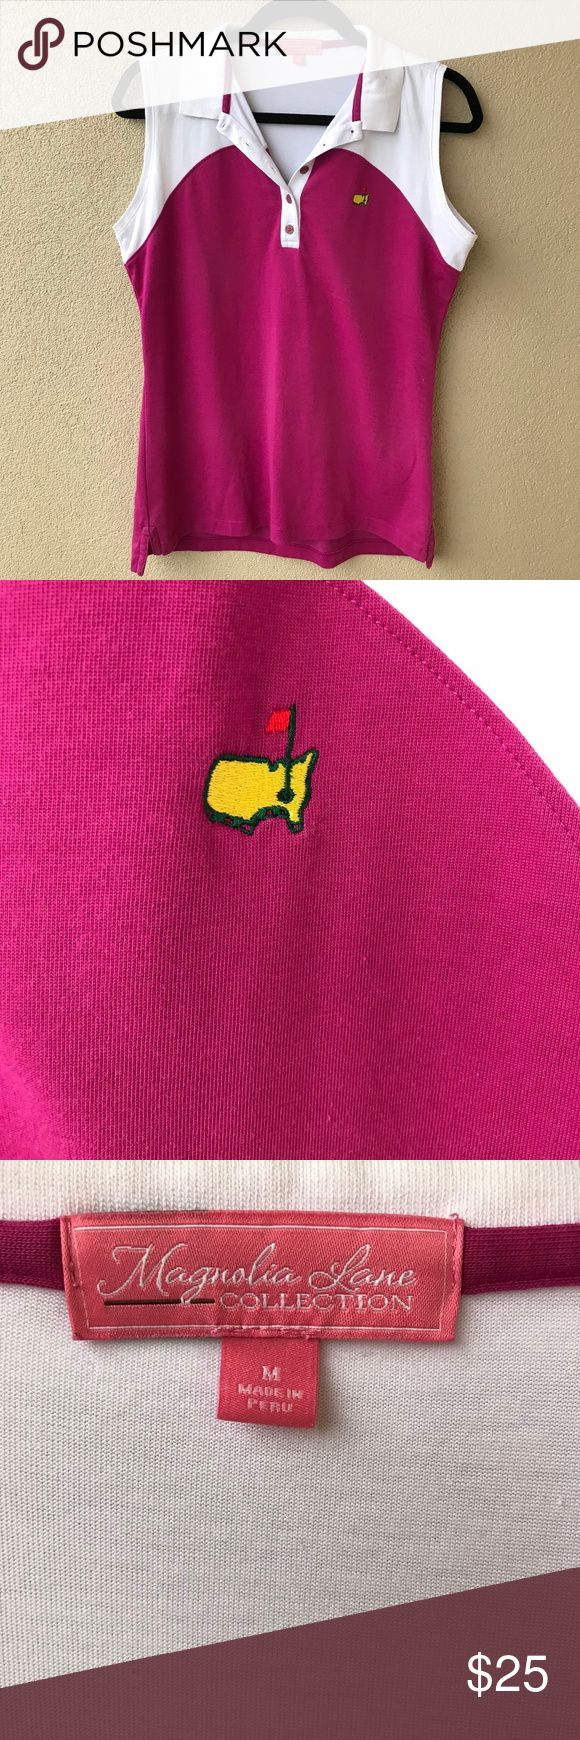 """Augusta National Masters Magnolia Lane Golf Shirt Celebrate the Augusta National PGA Masters tournament with this magenta and white half button gold tank top from Magnolia Lane.  This top has a magenta purple body with a white collar secured by five buttons.  Excellent used condition.  - Size Medium M - Approx. 19.5"""" armpit to armpit - Approx. 26"""" long - 70% pima cotton, 30% polyester  - Closet ID # 0475 Magnolia Lane Tops Tank Tops"""